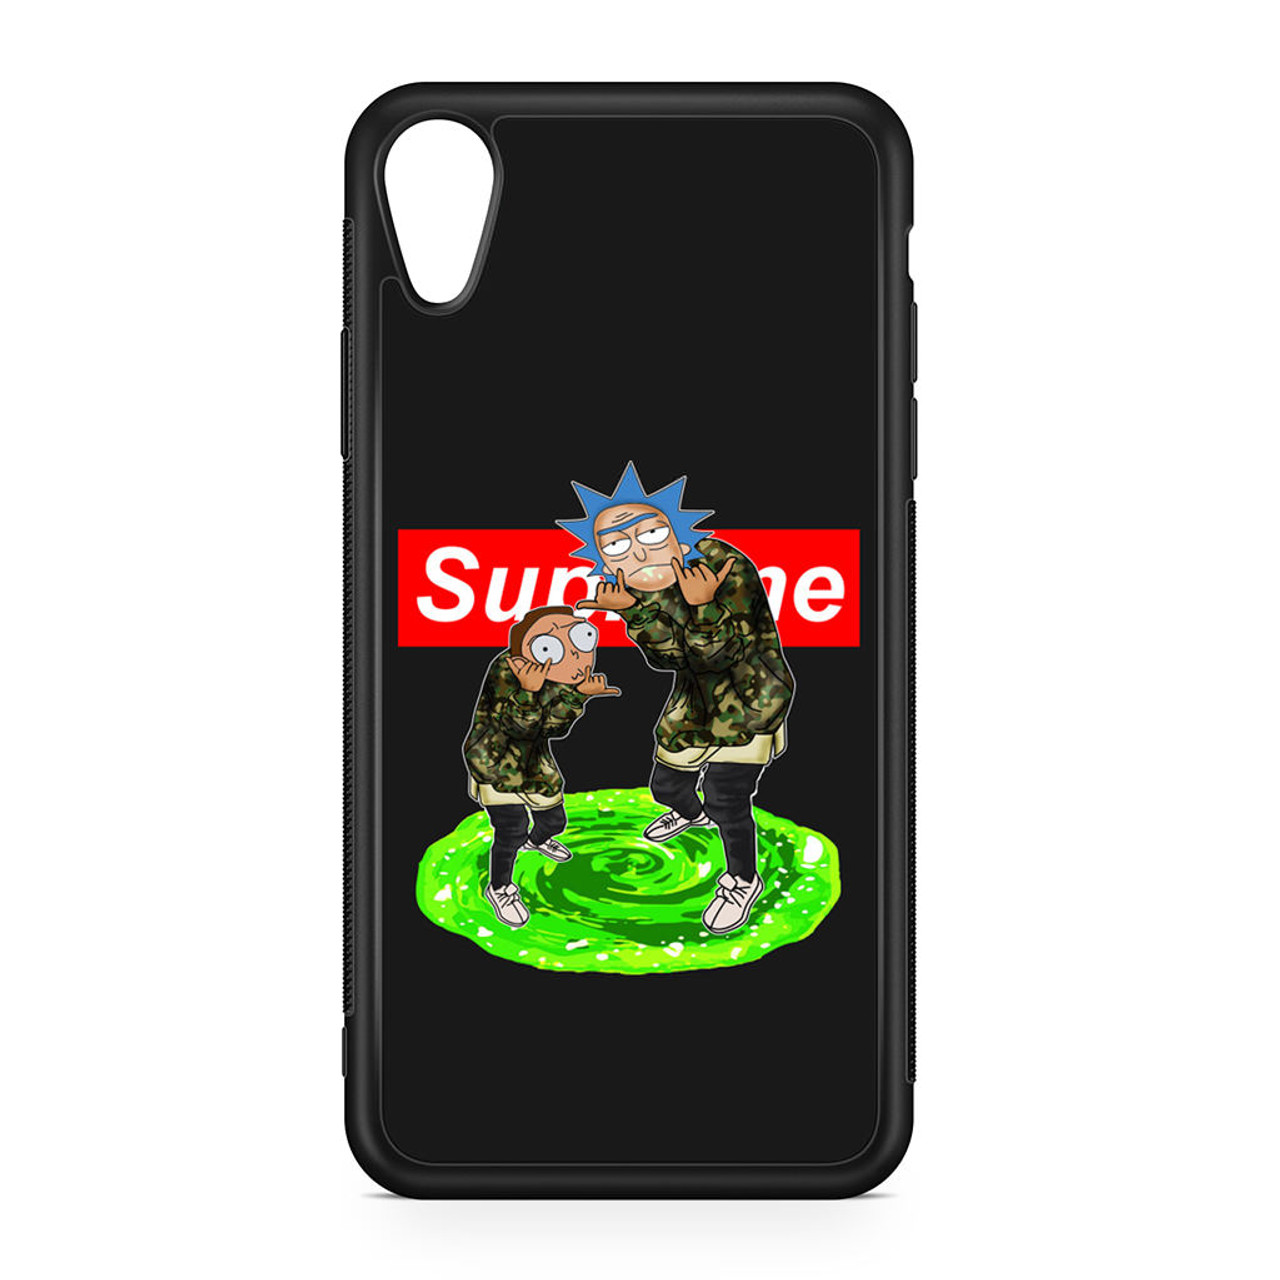 new product b4c48 5046d Rick and Morty Supreme iPhone XR Case